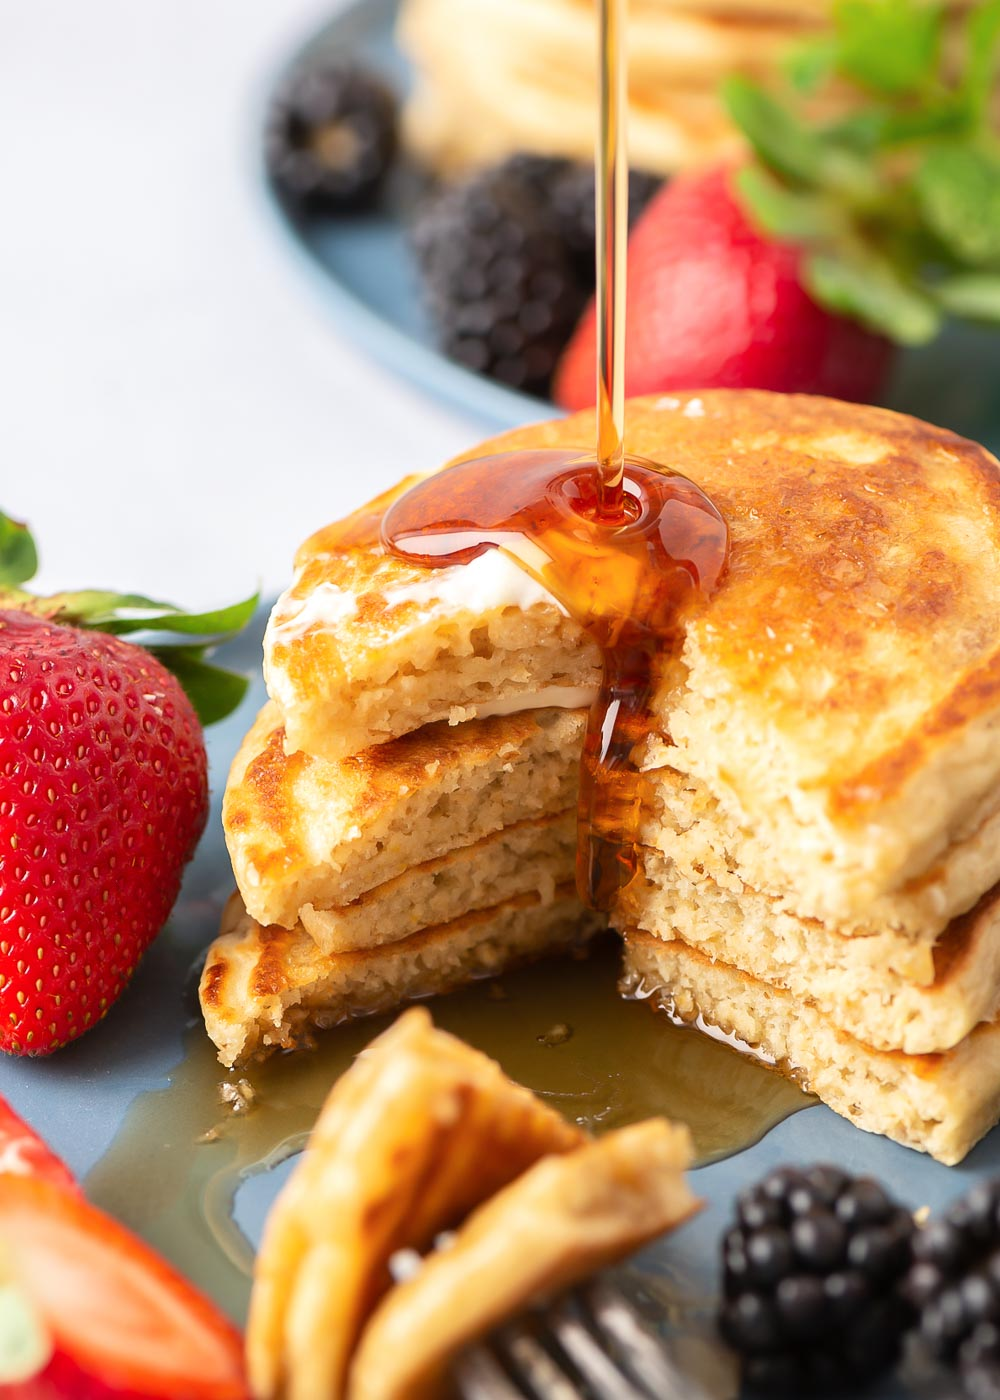 A stack of healthy oatmeal pancakes with syrup